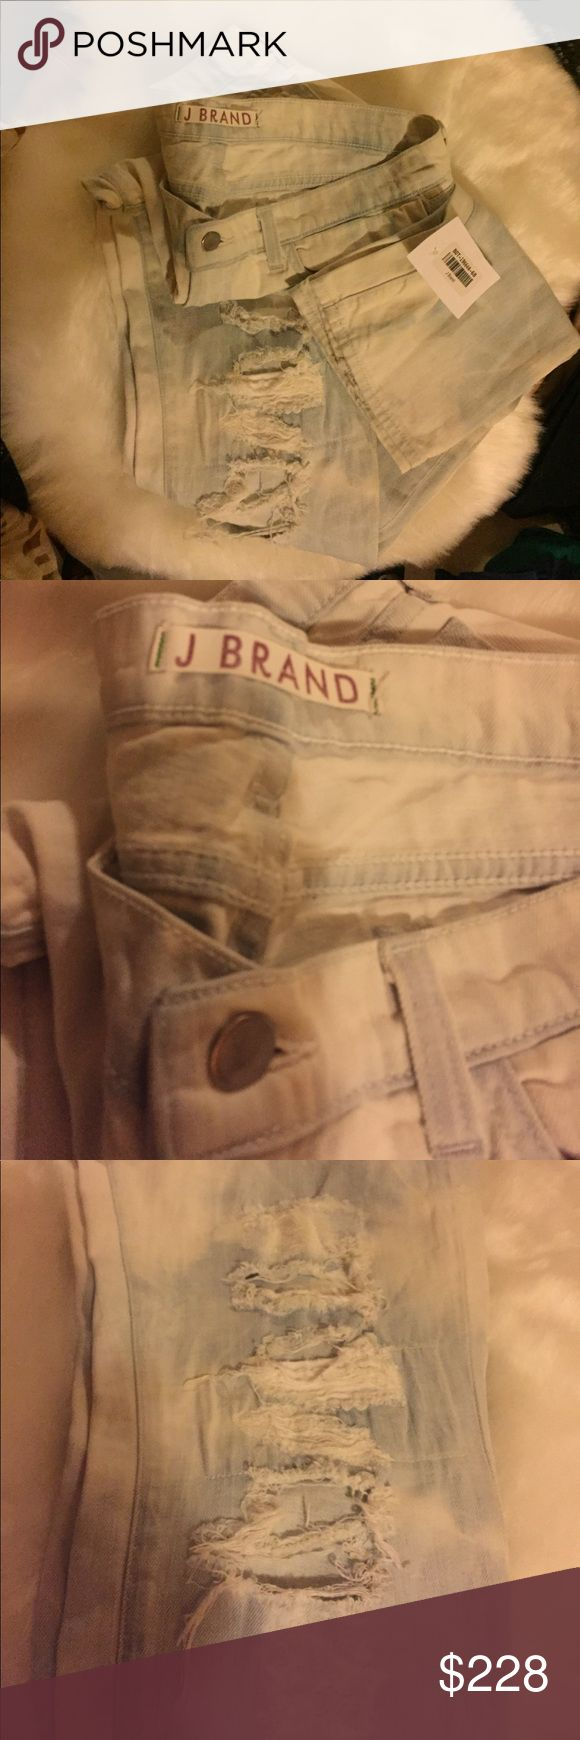 JBrandAcidWashedSuperLight&SoftDistressedJeans29R Totally in love with these J brands! I used to sell them all the time at an exclusive online boutique and I'm so thrilled to offer these to you. Size 29 regular but are very stretchy so depending on your measurements could go up a size easily in my opinion. Please ask questions for specifics on fit. Brand-new with tag of authenticity✔️ready to wear✔️awesome distressed with shshredded holes✔️perfect placement on each leg. No visible damage…